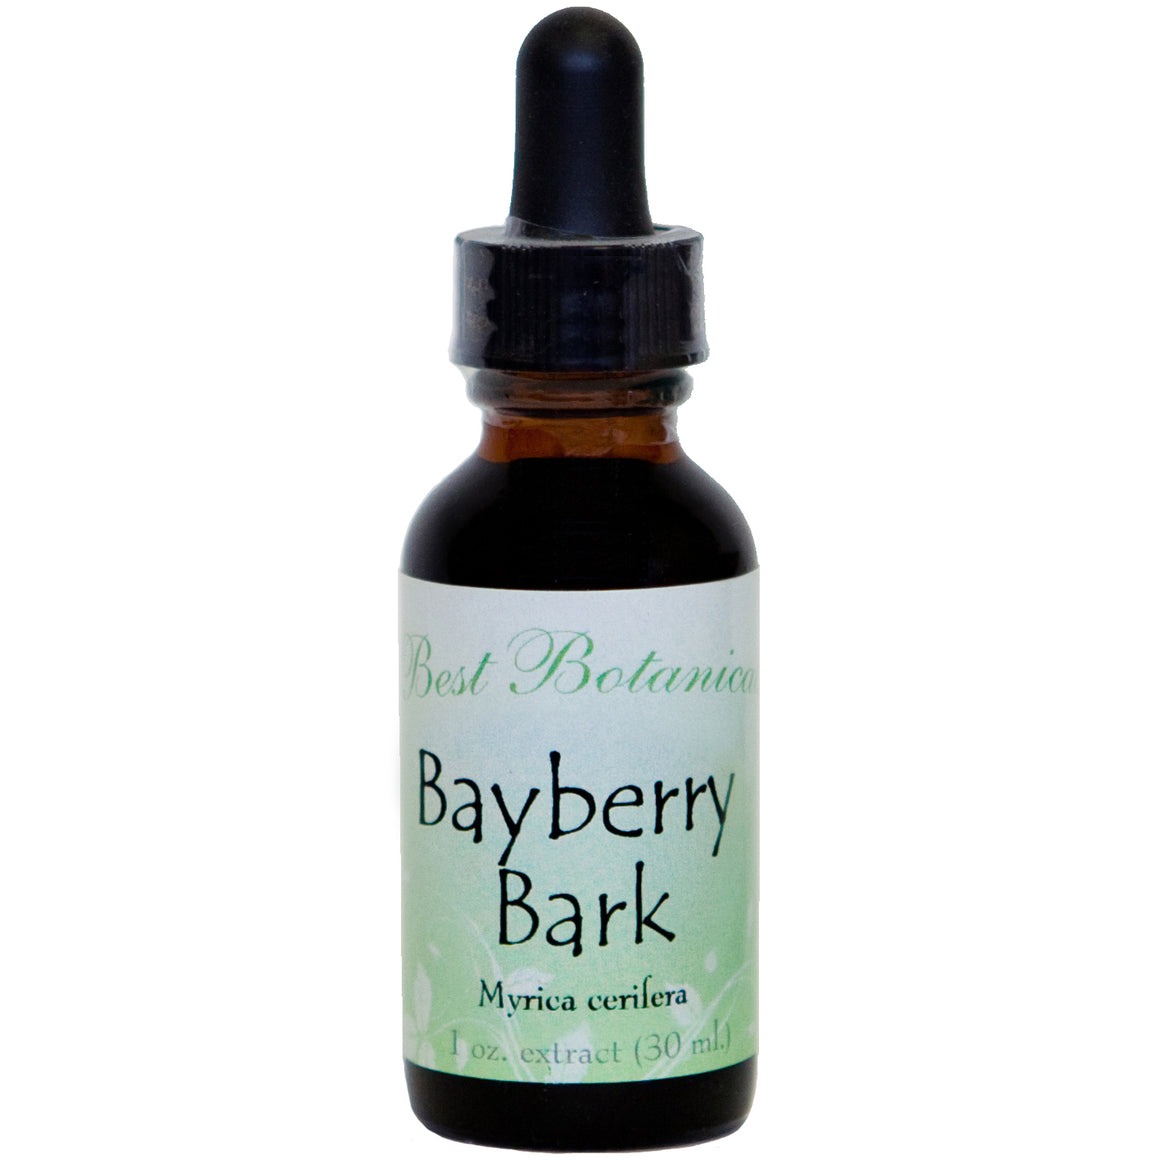 Bayberry Root Bark Extract